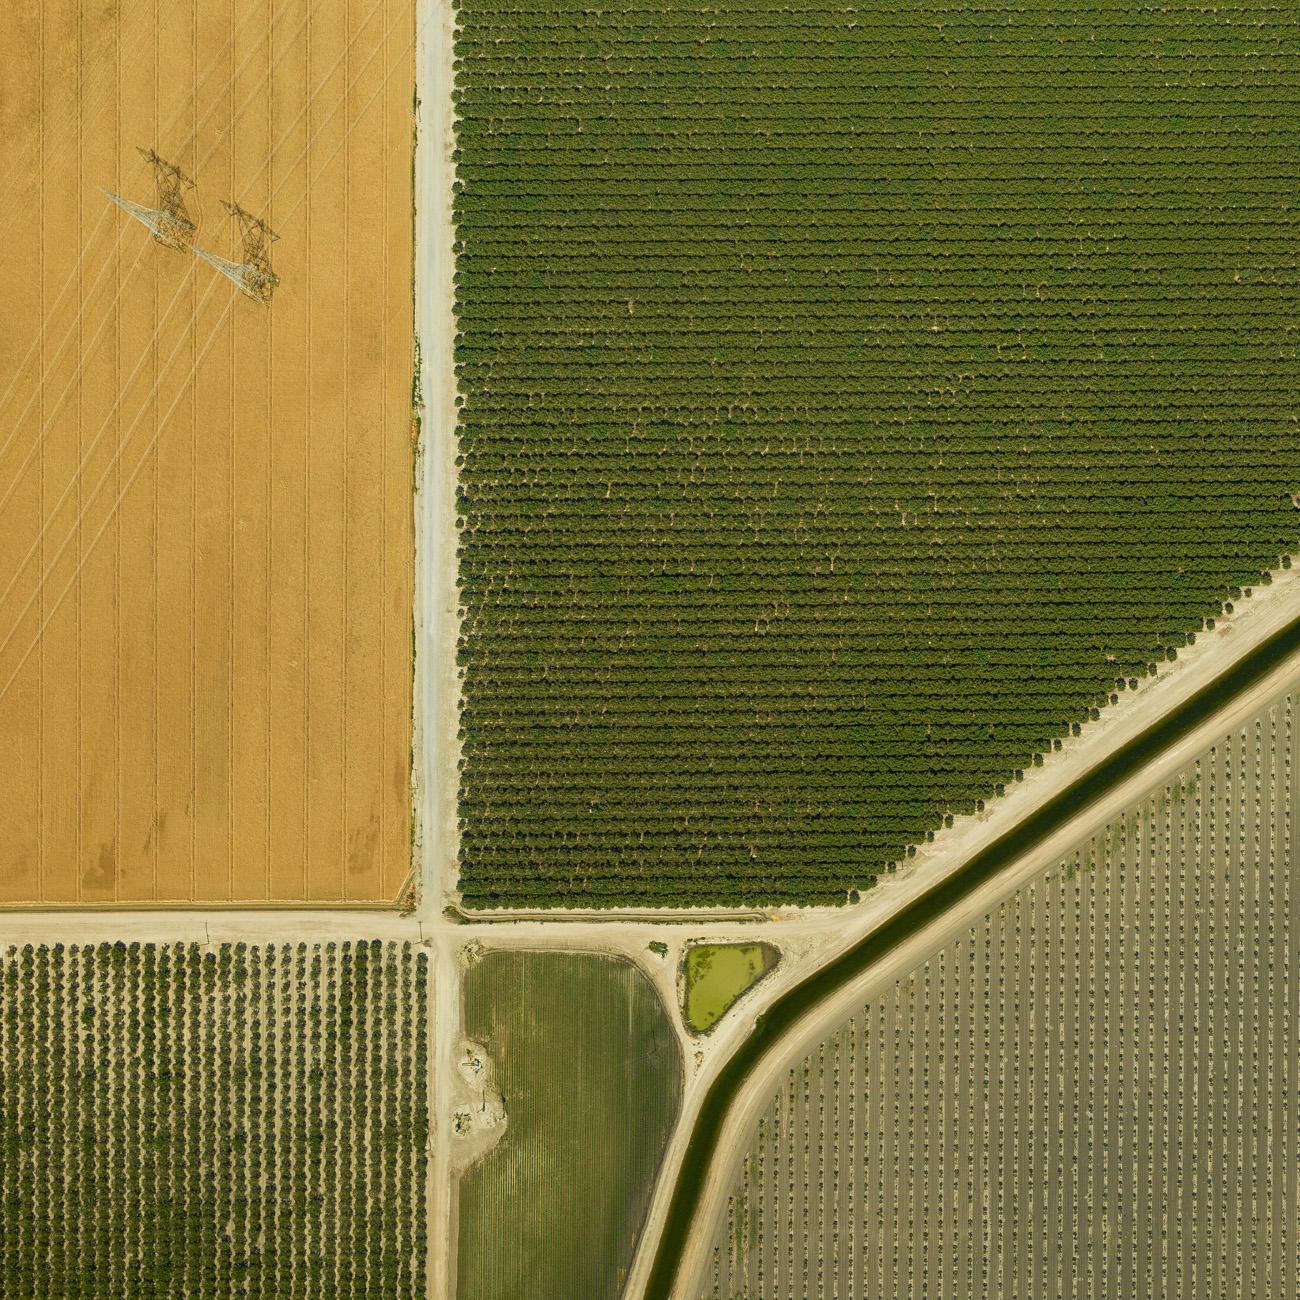 Farmland California